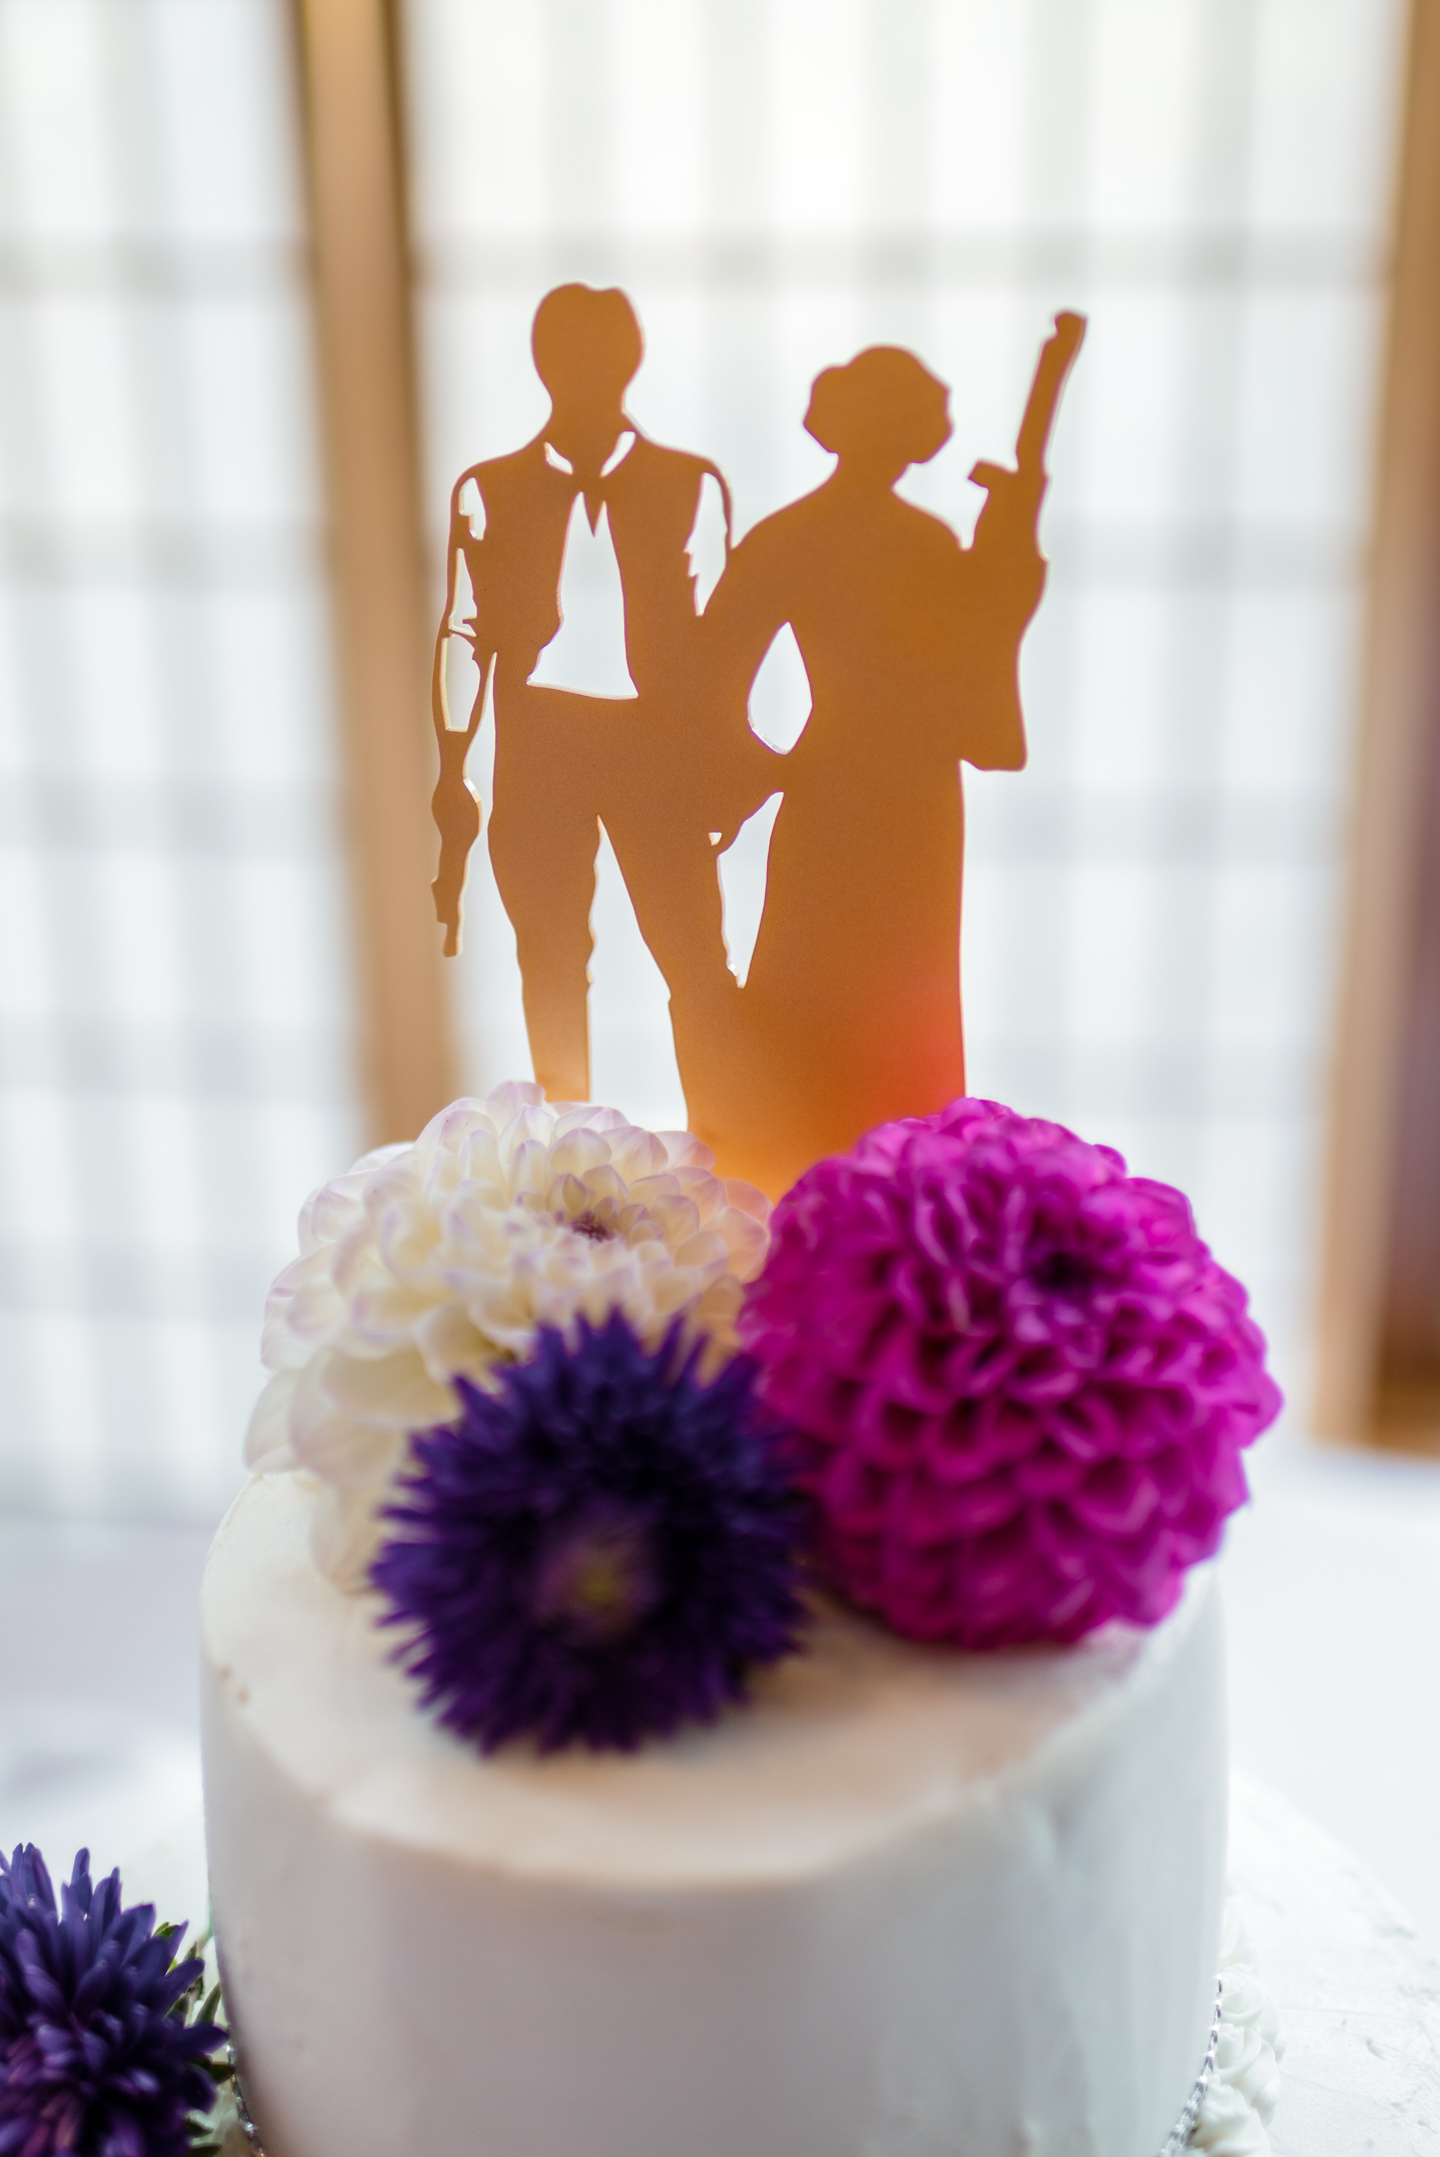 Wedding Cake Topper Details at Echo Falls Golf Course